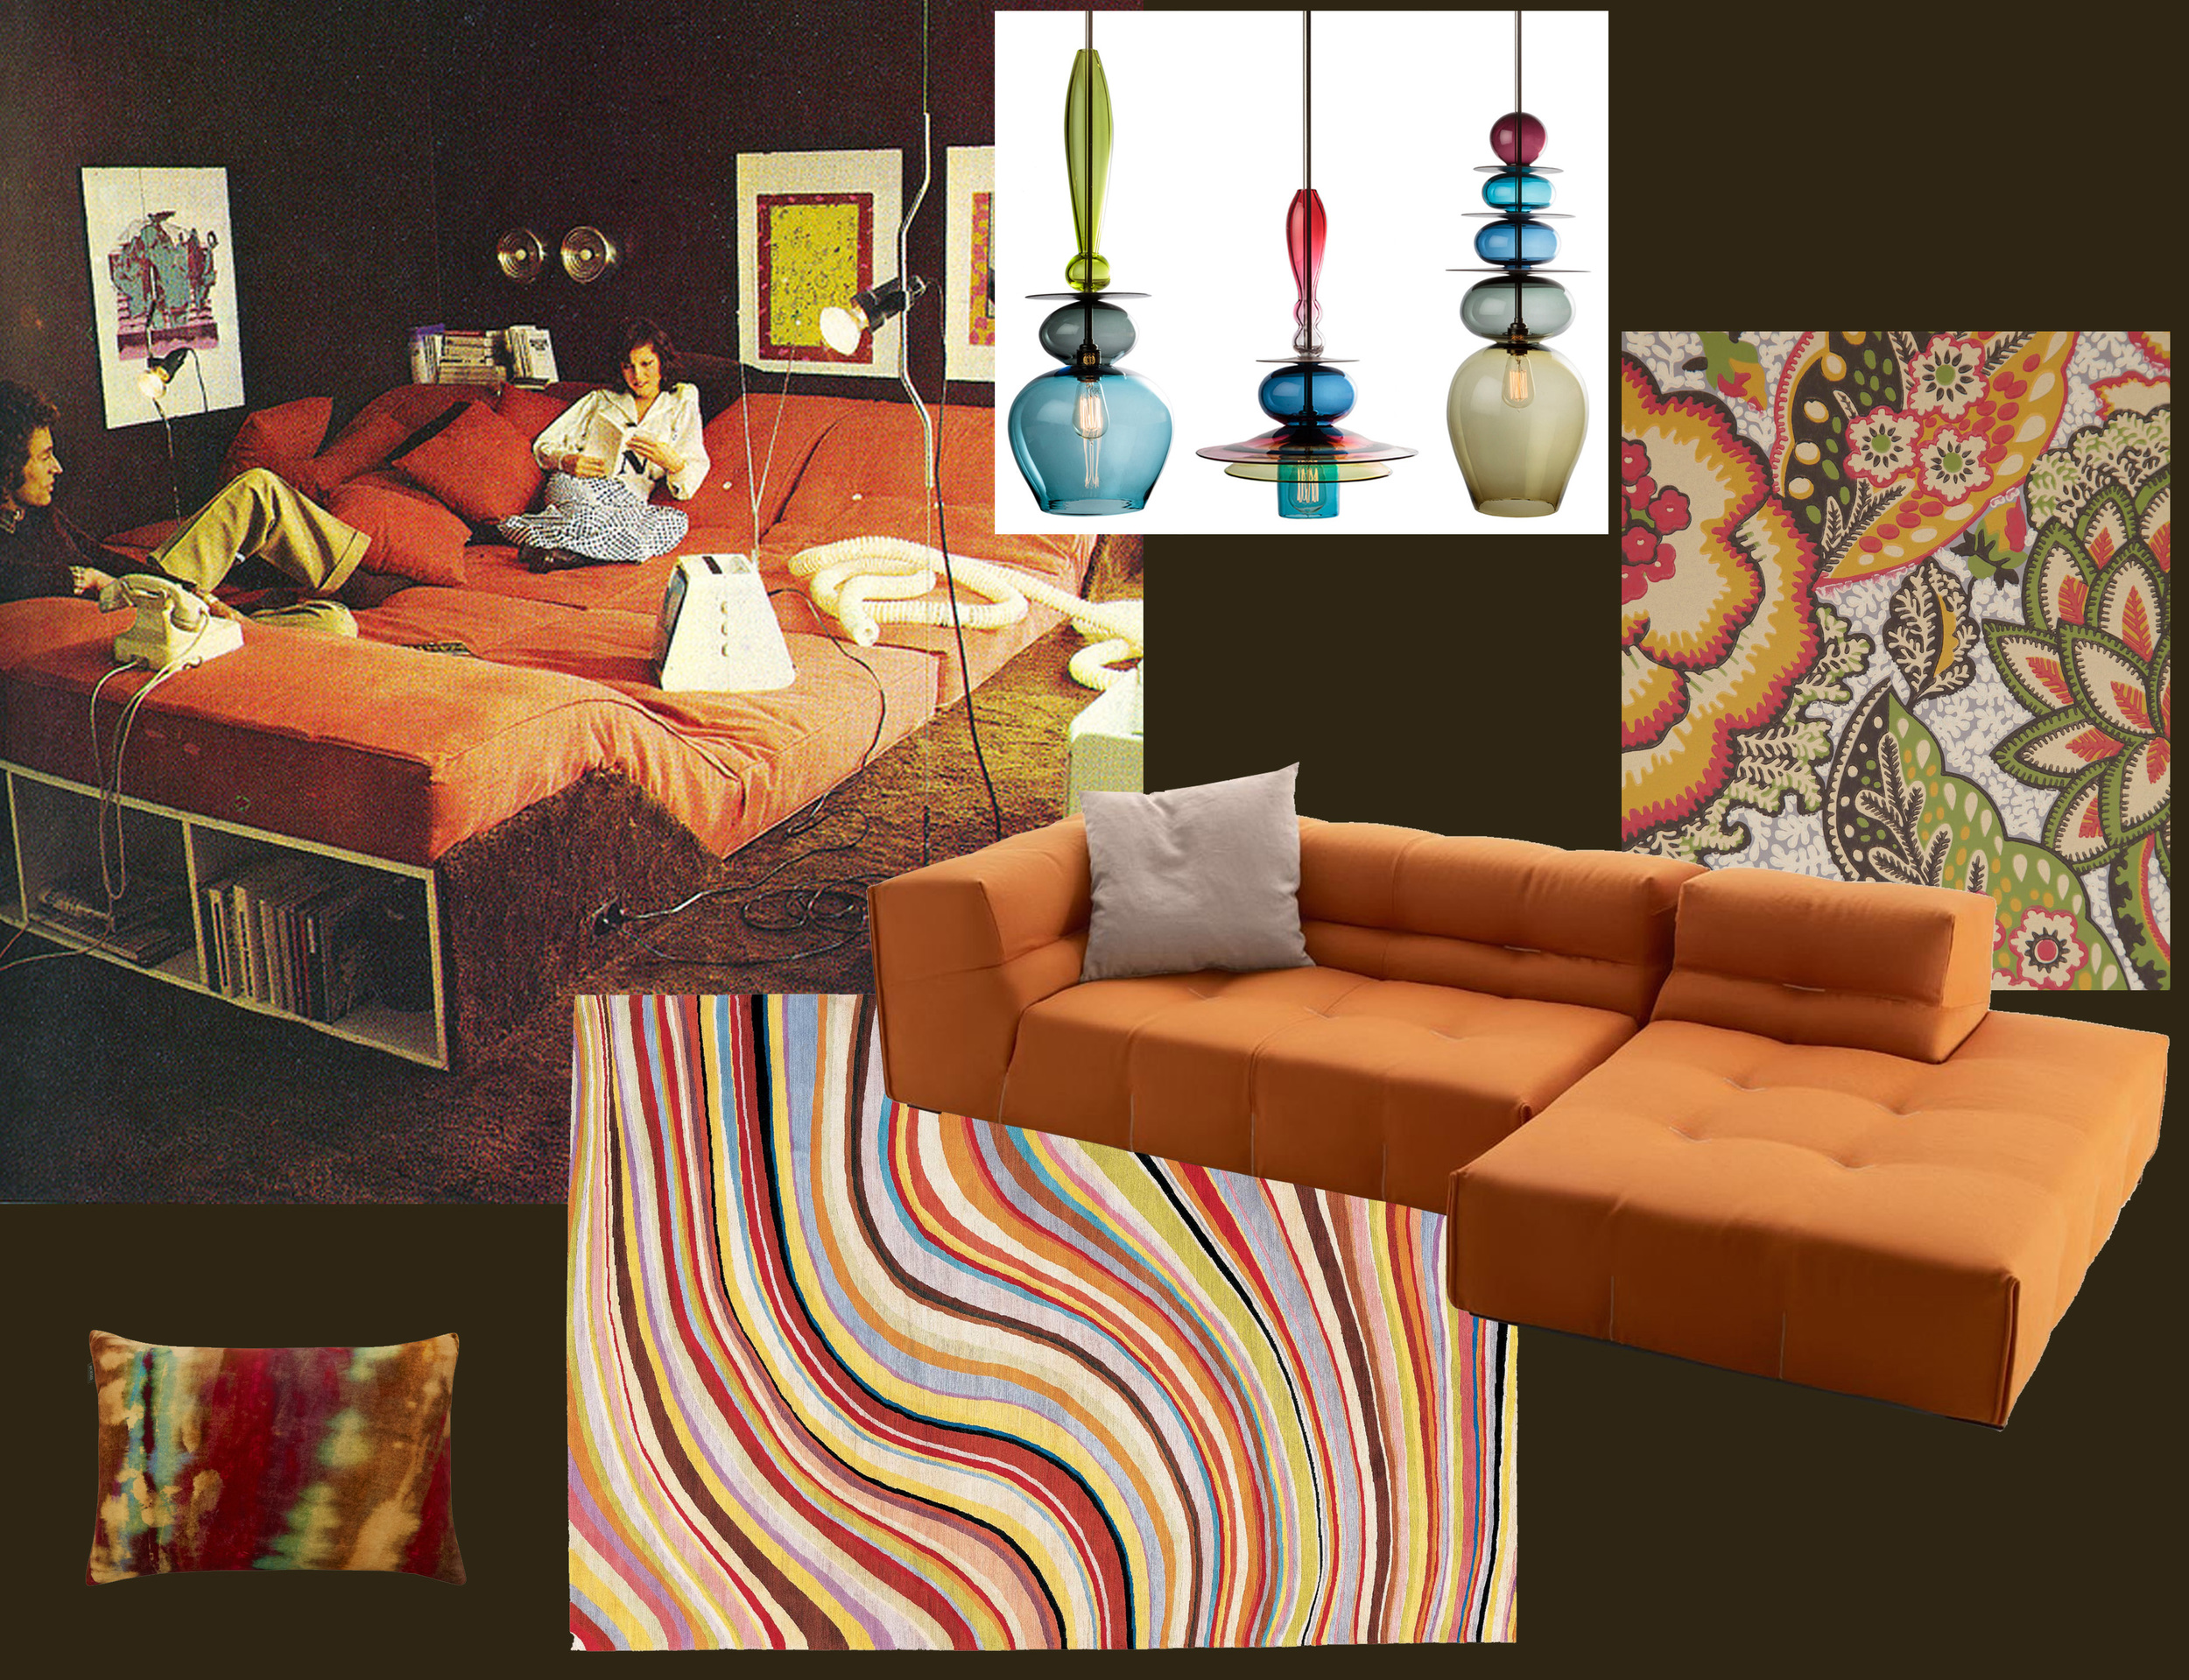 archive picture found on  Pinterest  - Boeme digital printed cushion  Liberty - Swirl rug designed by Paul Smith  The Rug Company  - Tuffy Too sofa  B&B Italia  - Patricia Anne wallpaper  Liberty  - hand-blown hanging lamps  Curiousa & Curiousa